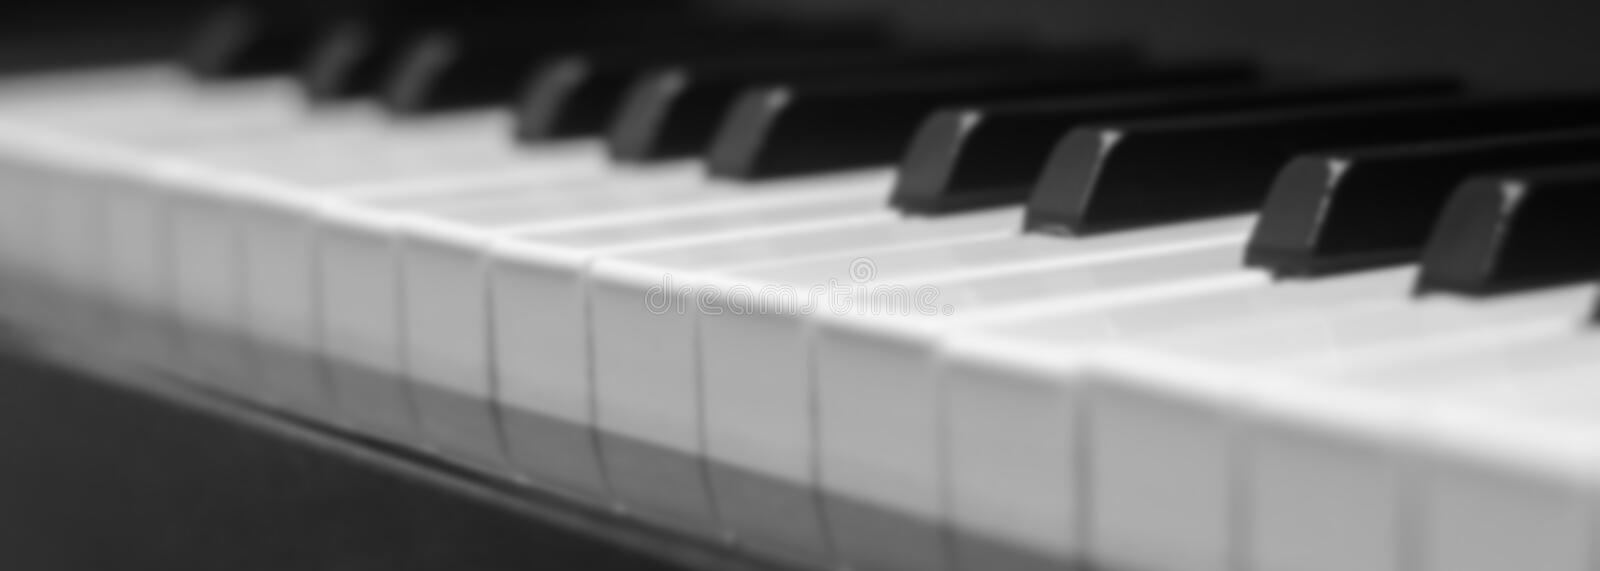 Piano keys close-up, side view of a musical instrument royalty free stock image